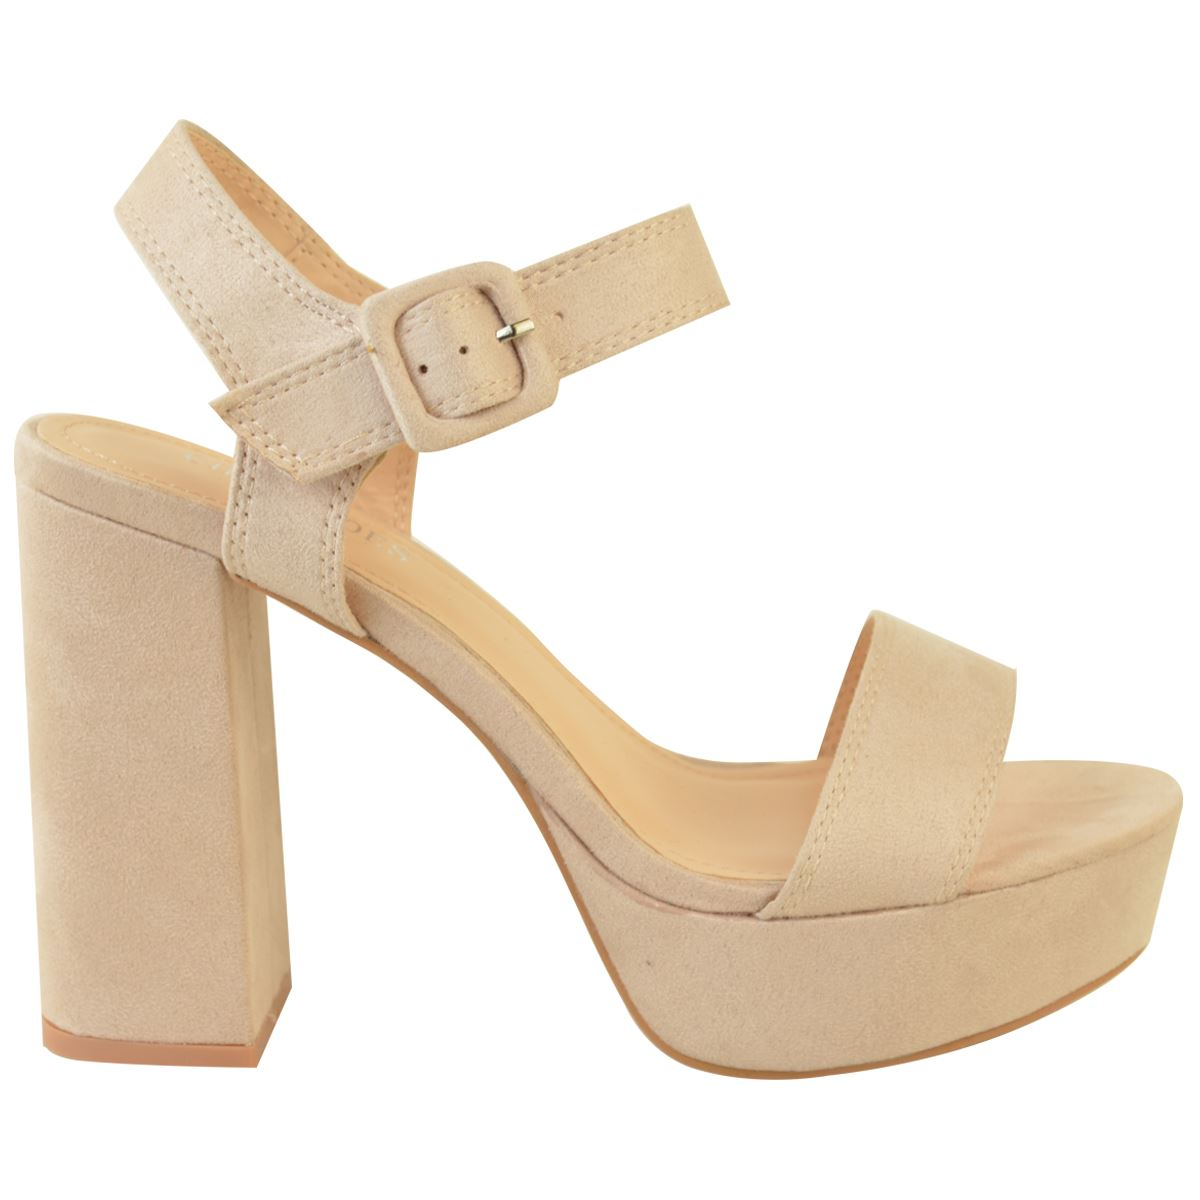 New-Womens-Summer-Platform-High-Heel-Sandals-Ladies-Open-Toe-Strappy-Party-Shoes thumbnail 34